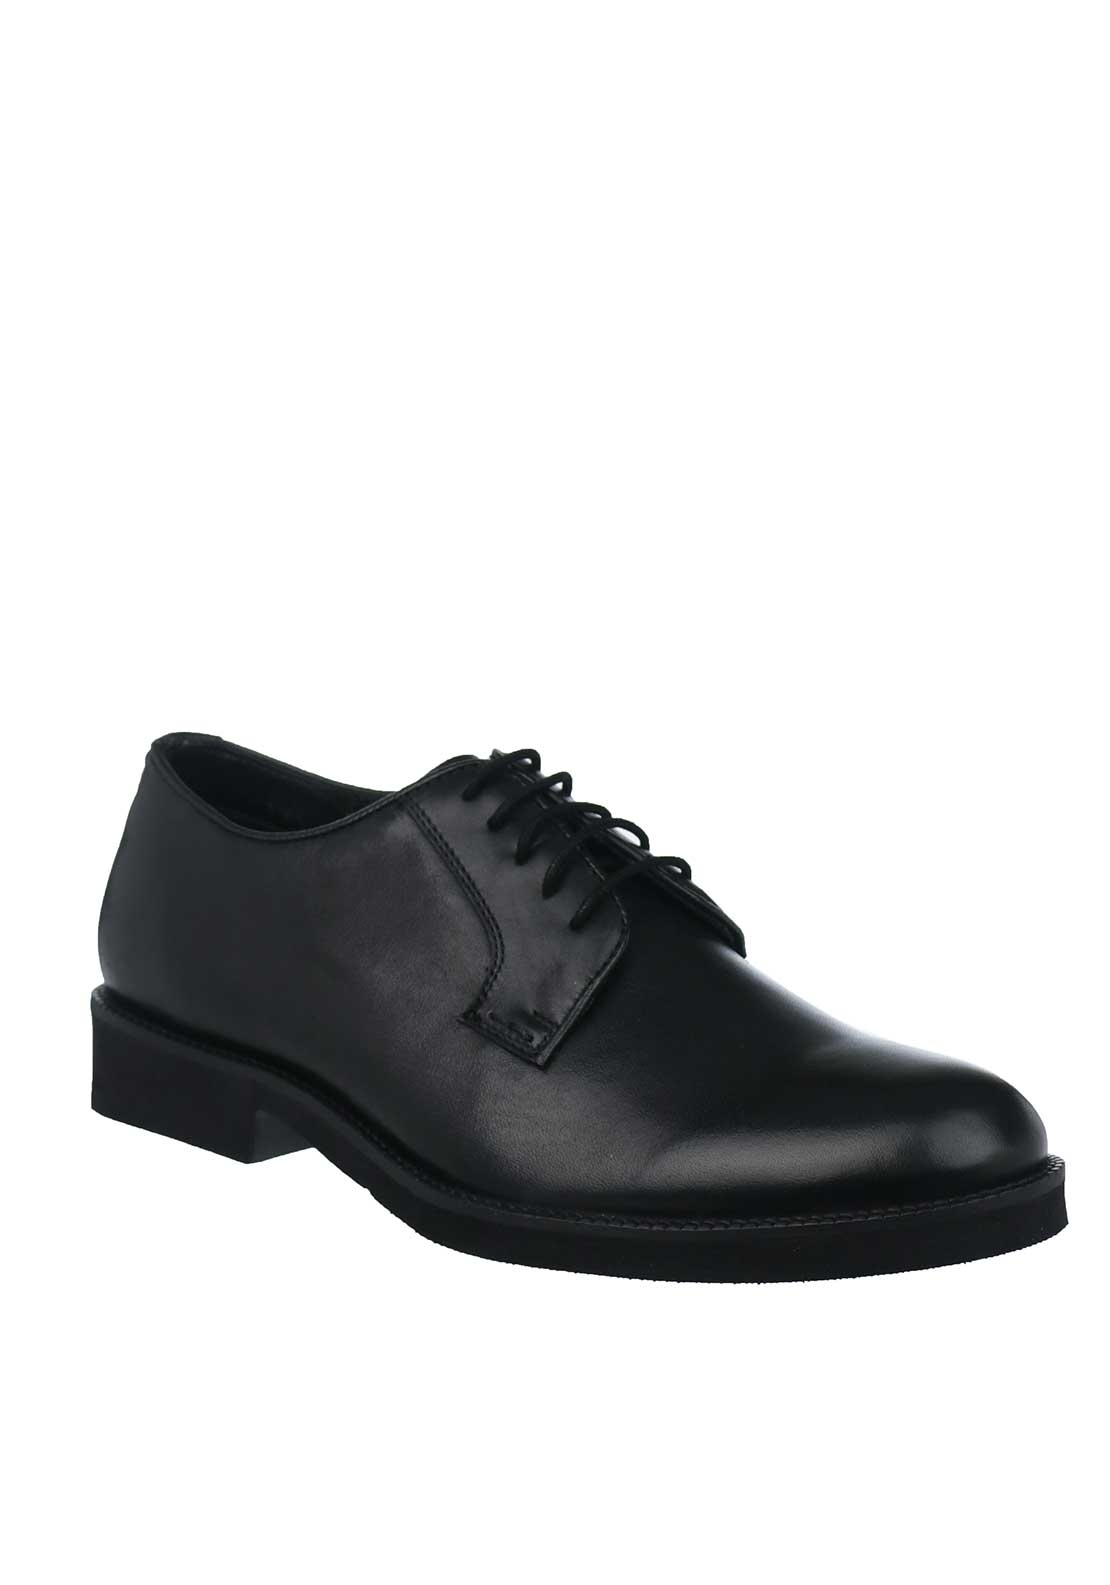 Paul O'Donnell by POD Delta Leather Shoes, Black